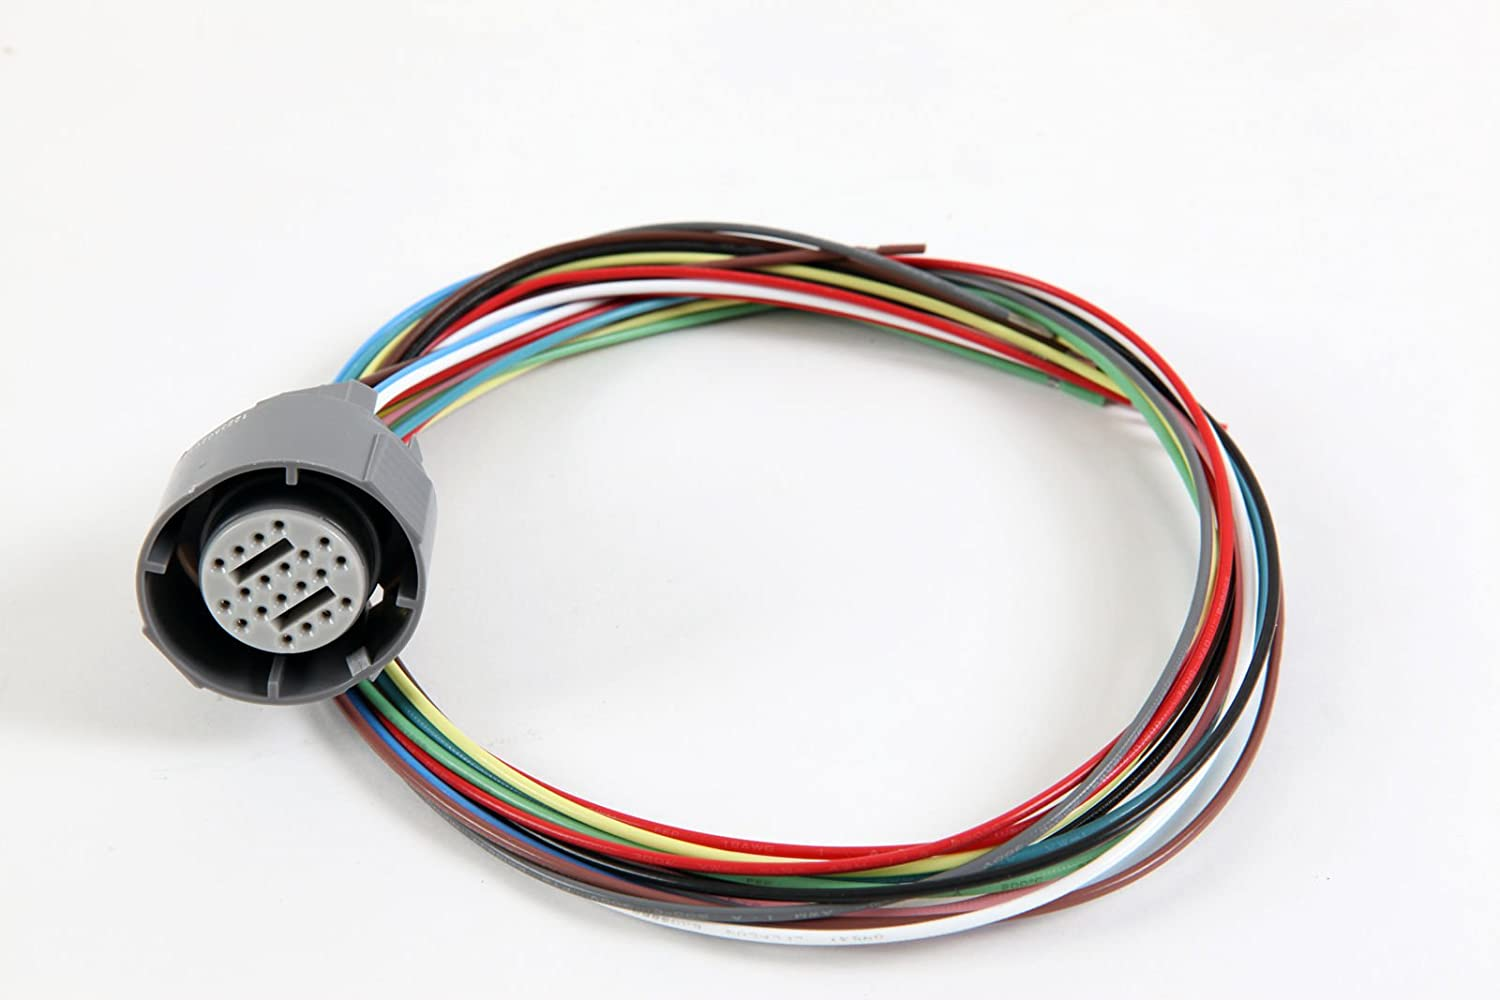 13 gm wiring harness amazon com gm 4l60e transmission external wire harness 1993 and  gm 4l60e transmission external wire